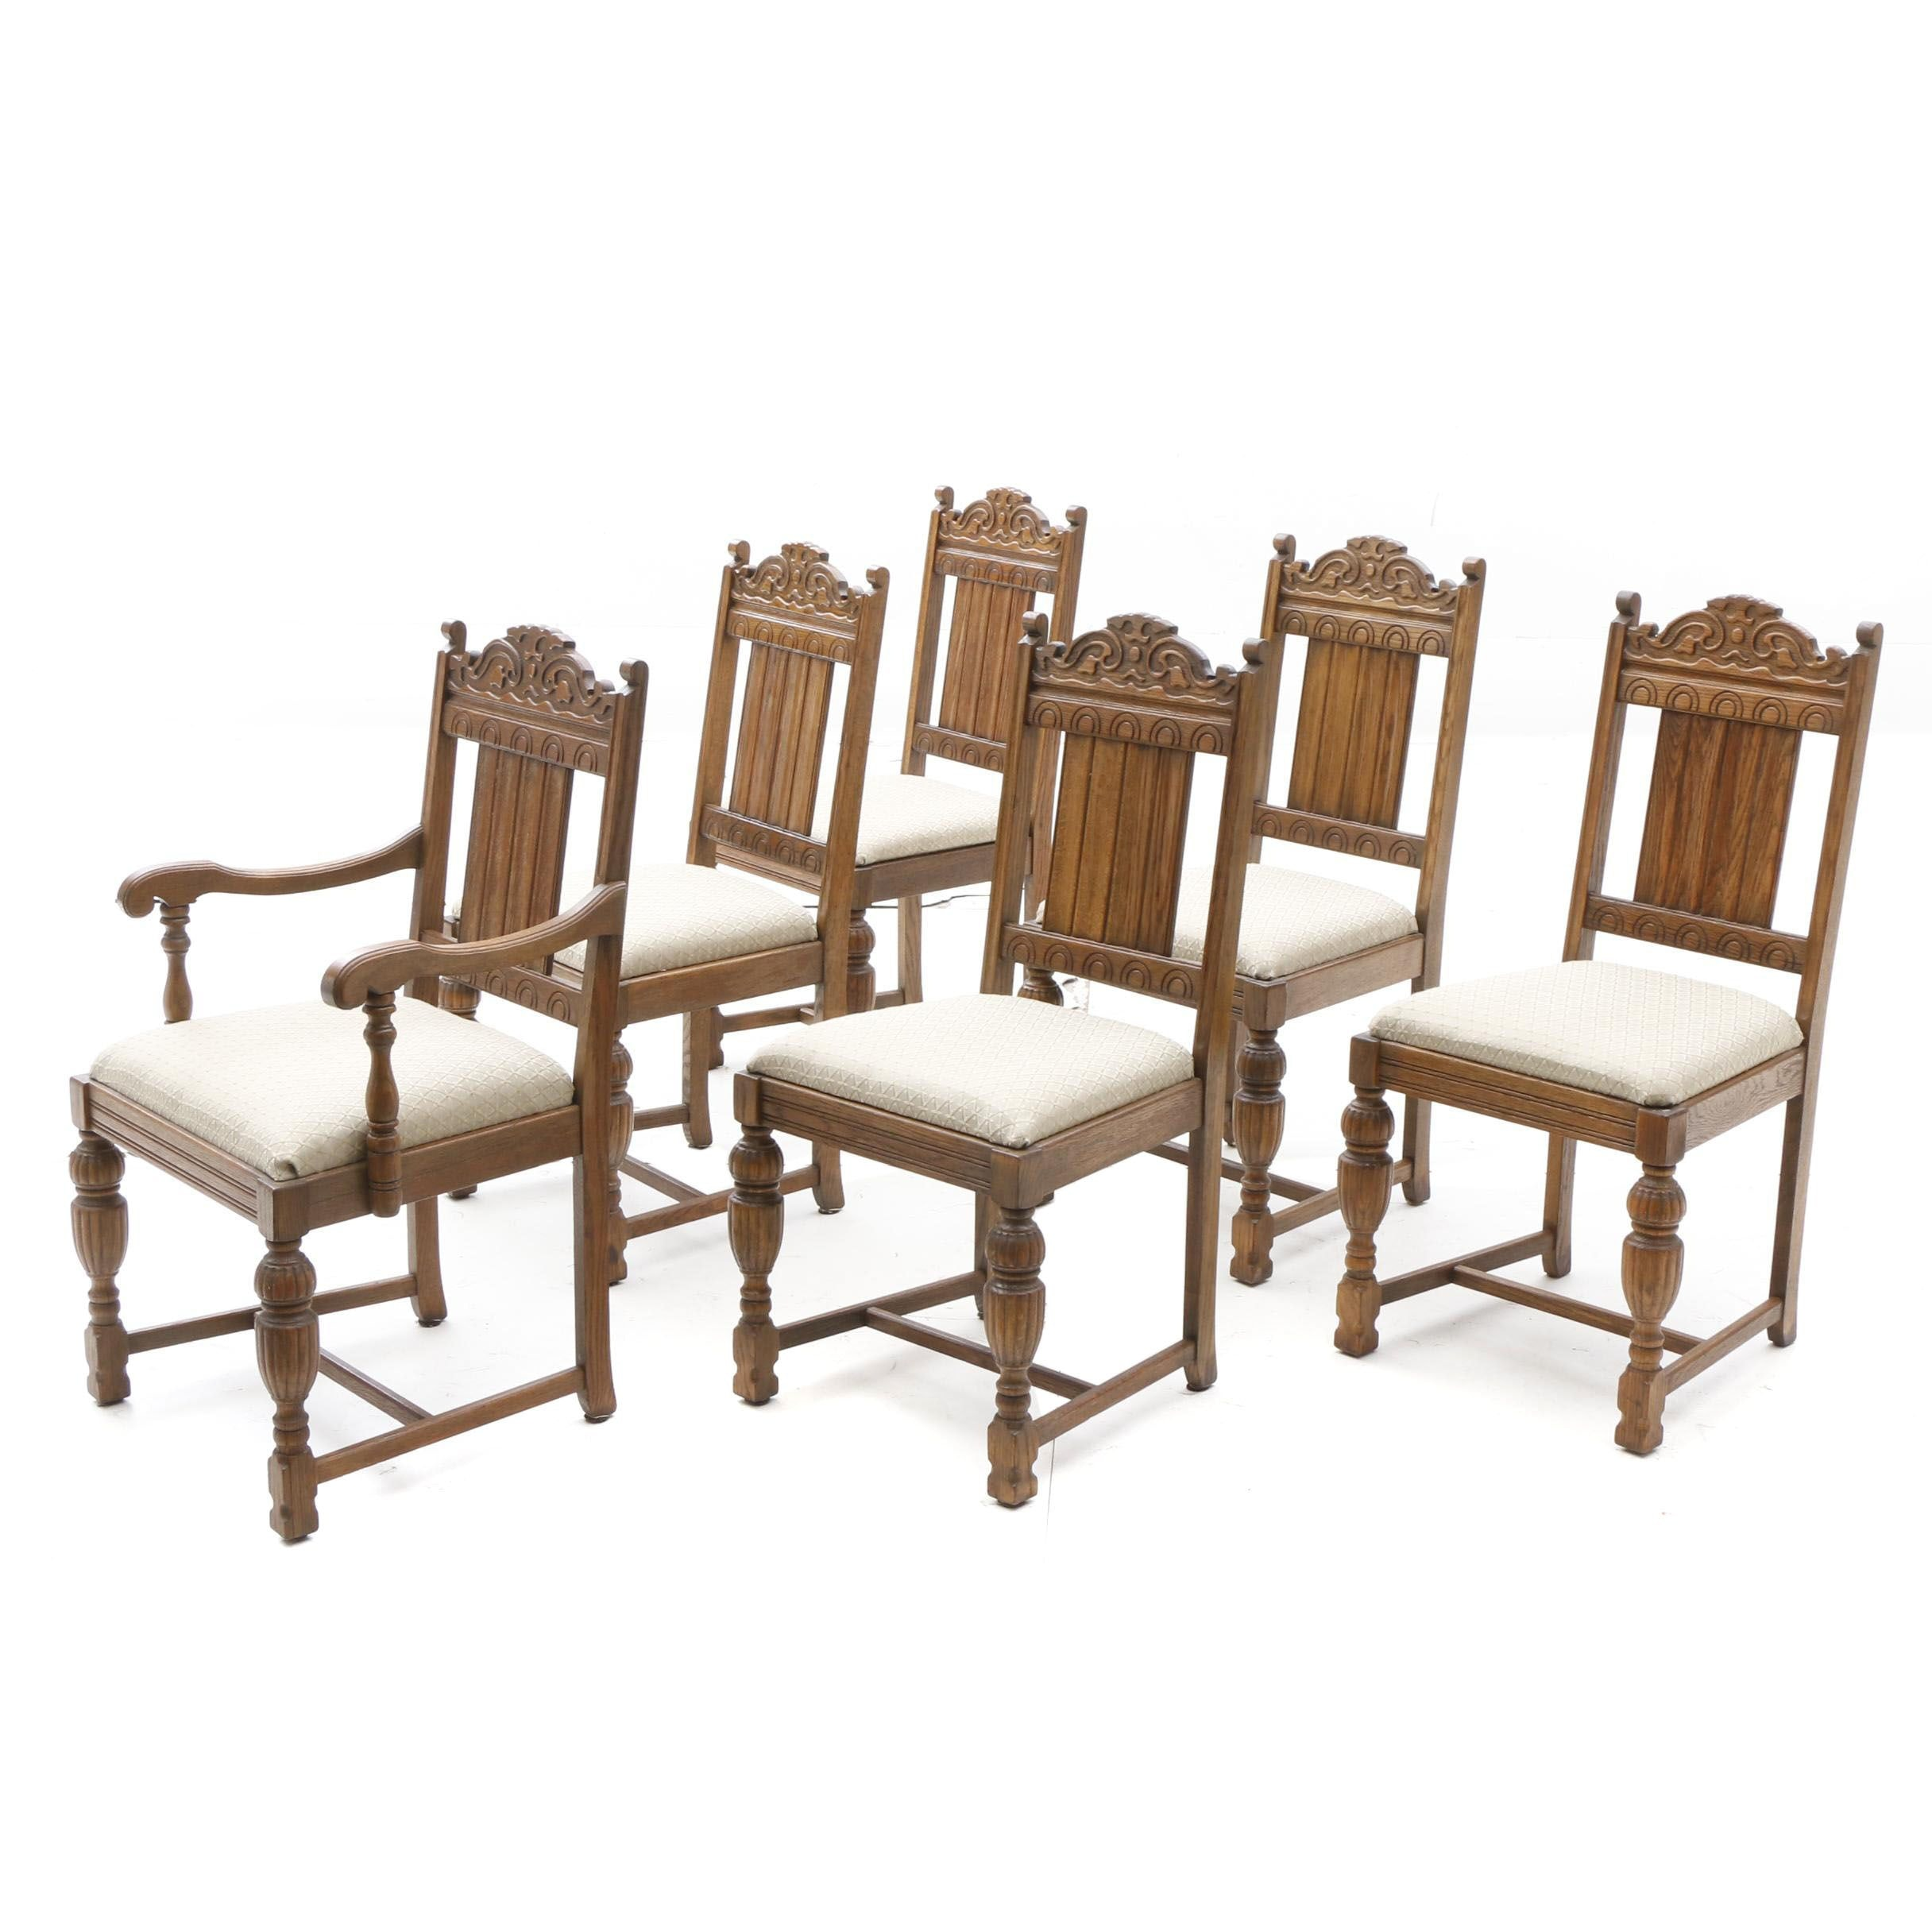 Early 20th Century English Renaissance Style Oak Dining Chairs